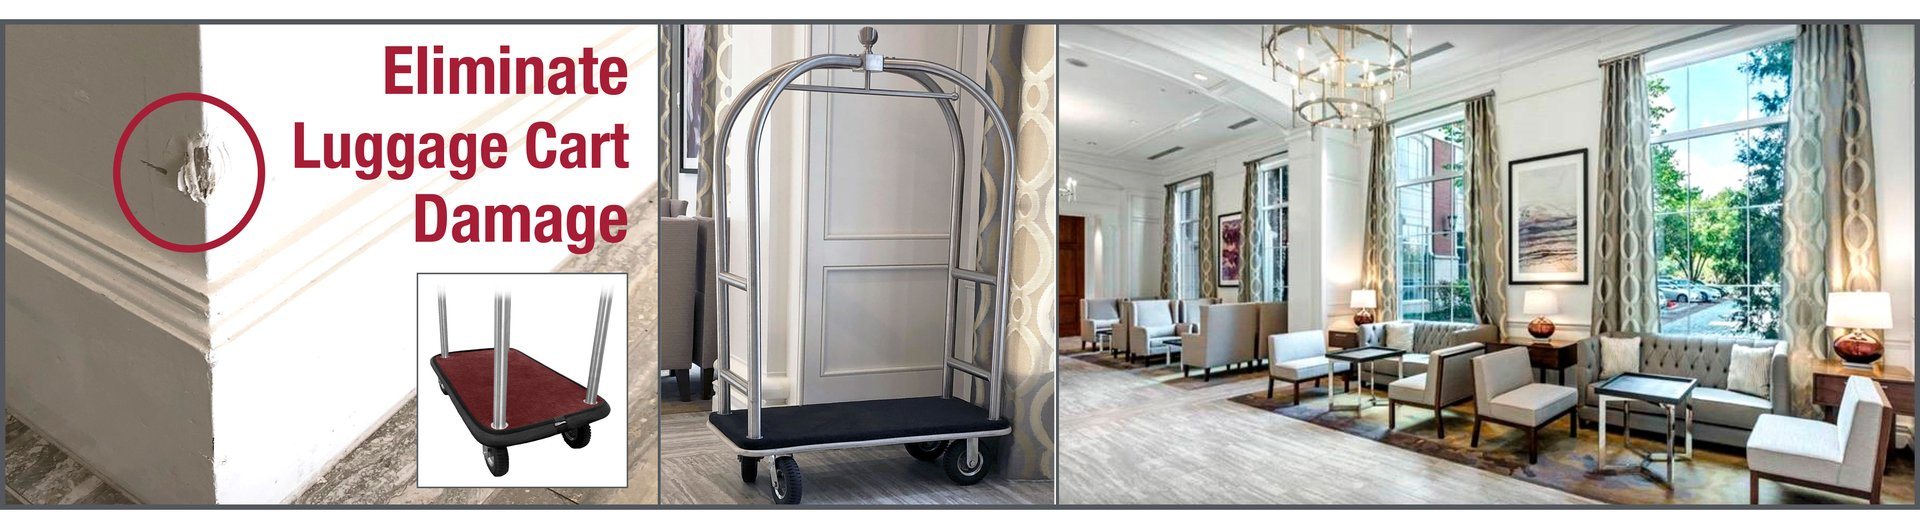 VacuBumper for Hotel & Housekeeping Equipment